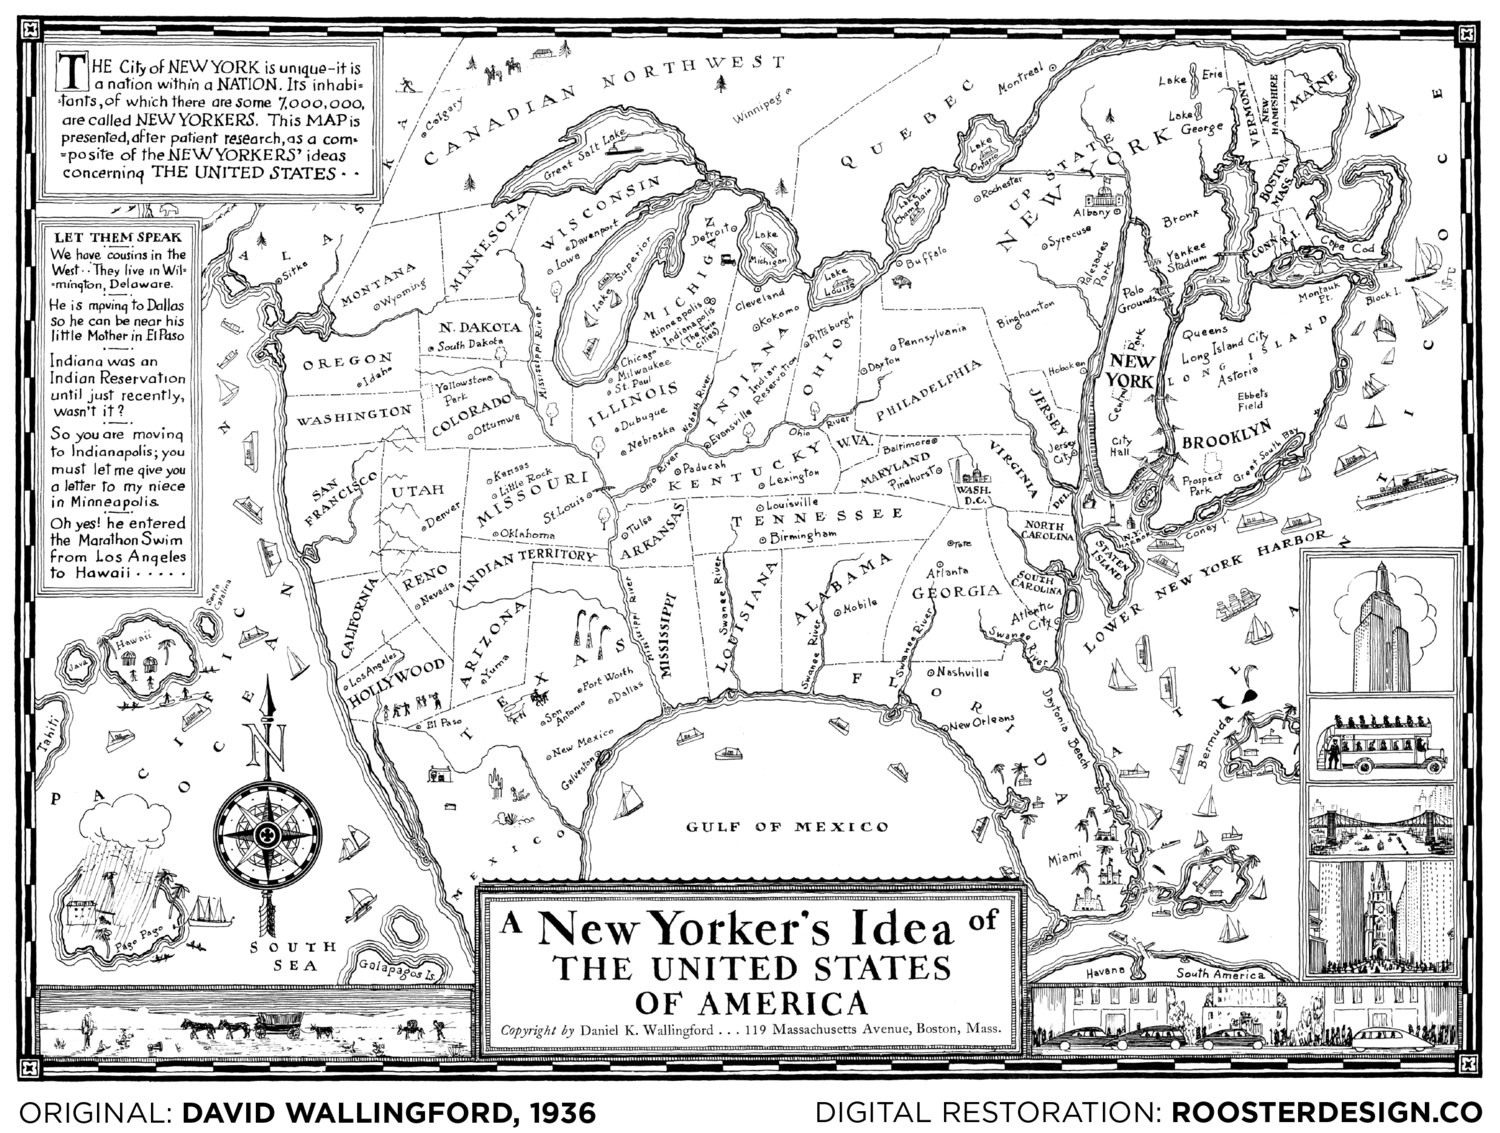 A New Yorker's Idea of the United States of America, 1938